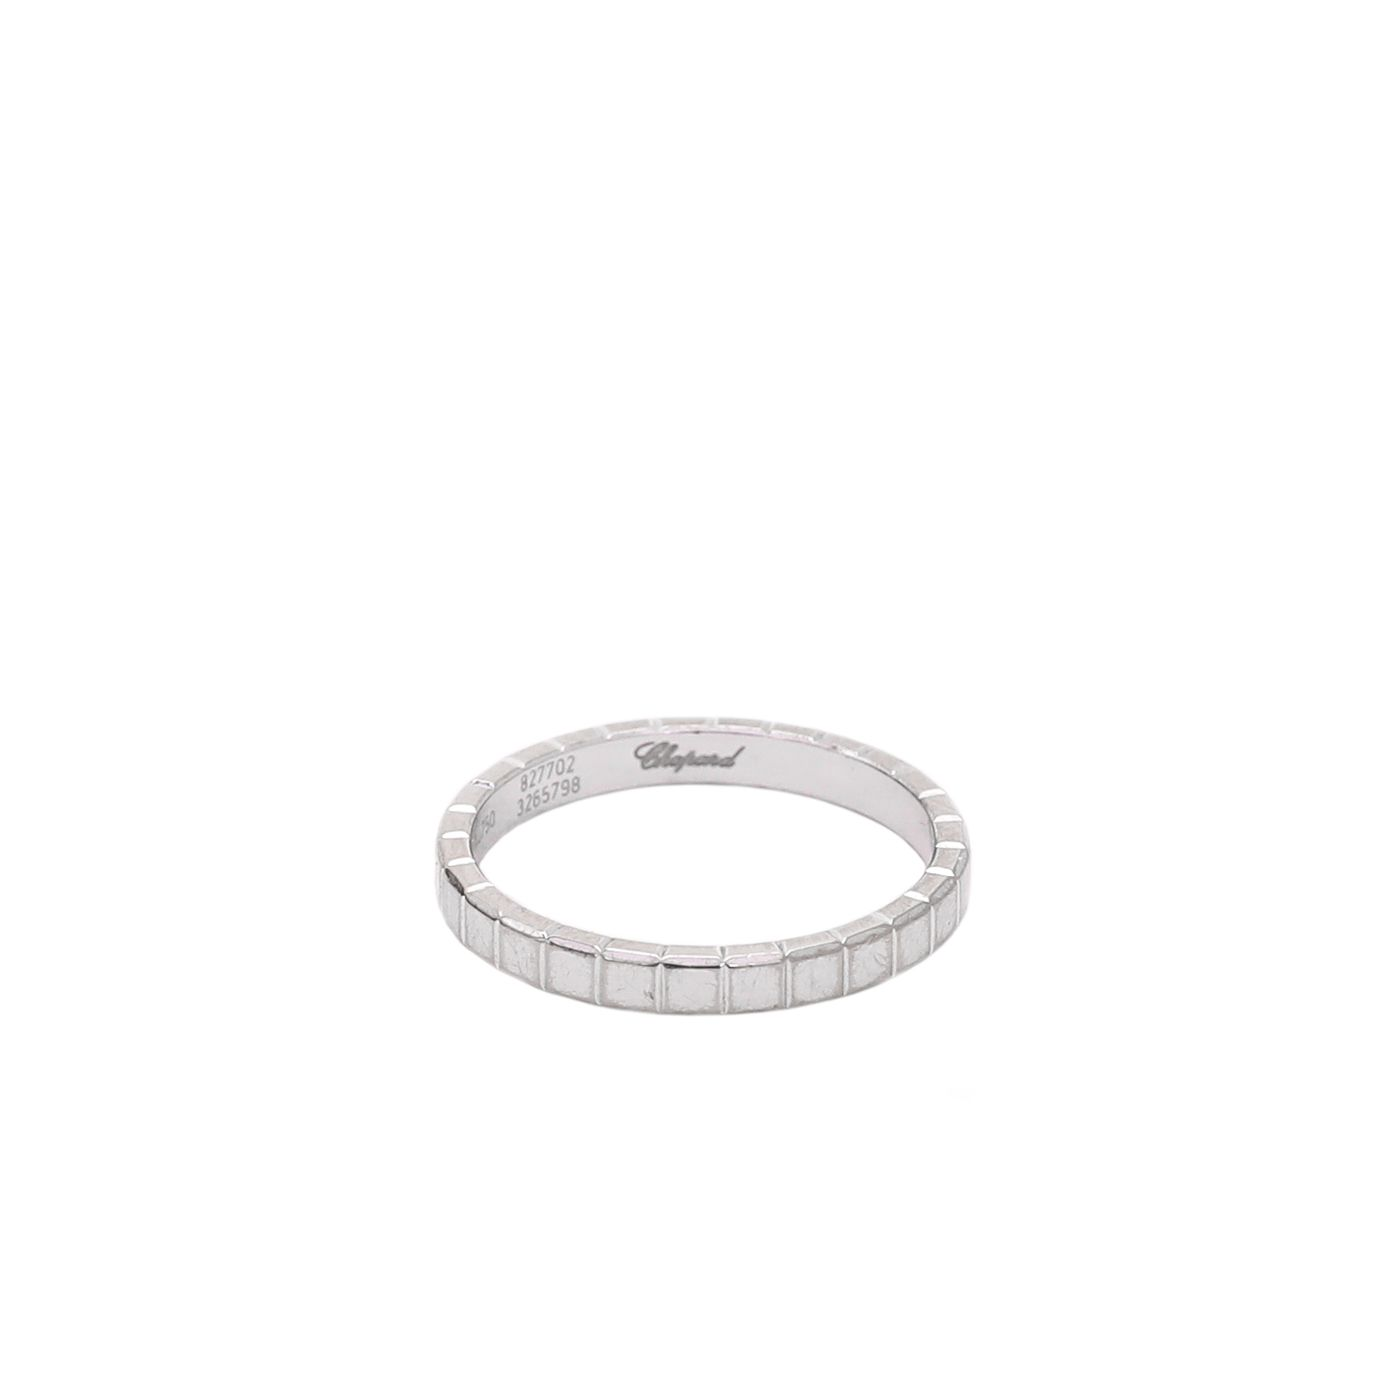 Chopard 18K White Gold Ice Cube Pure Ring 53